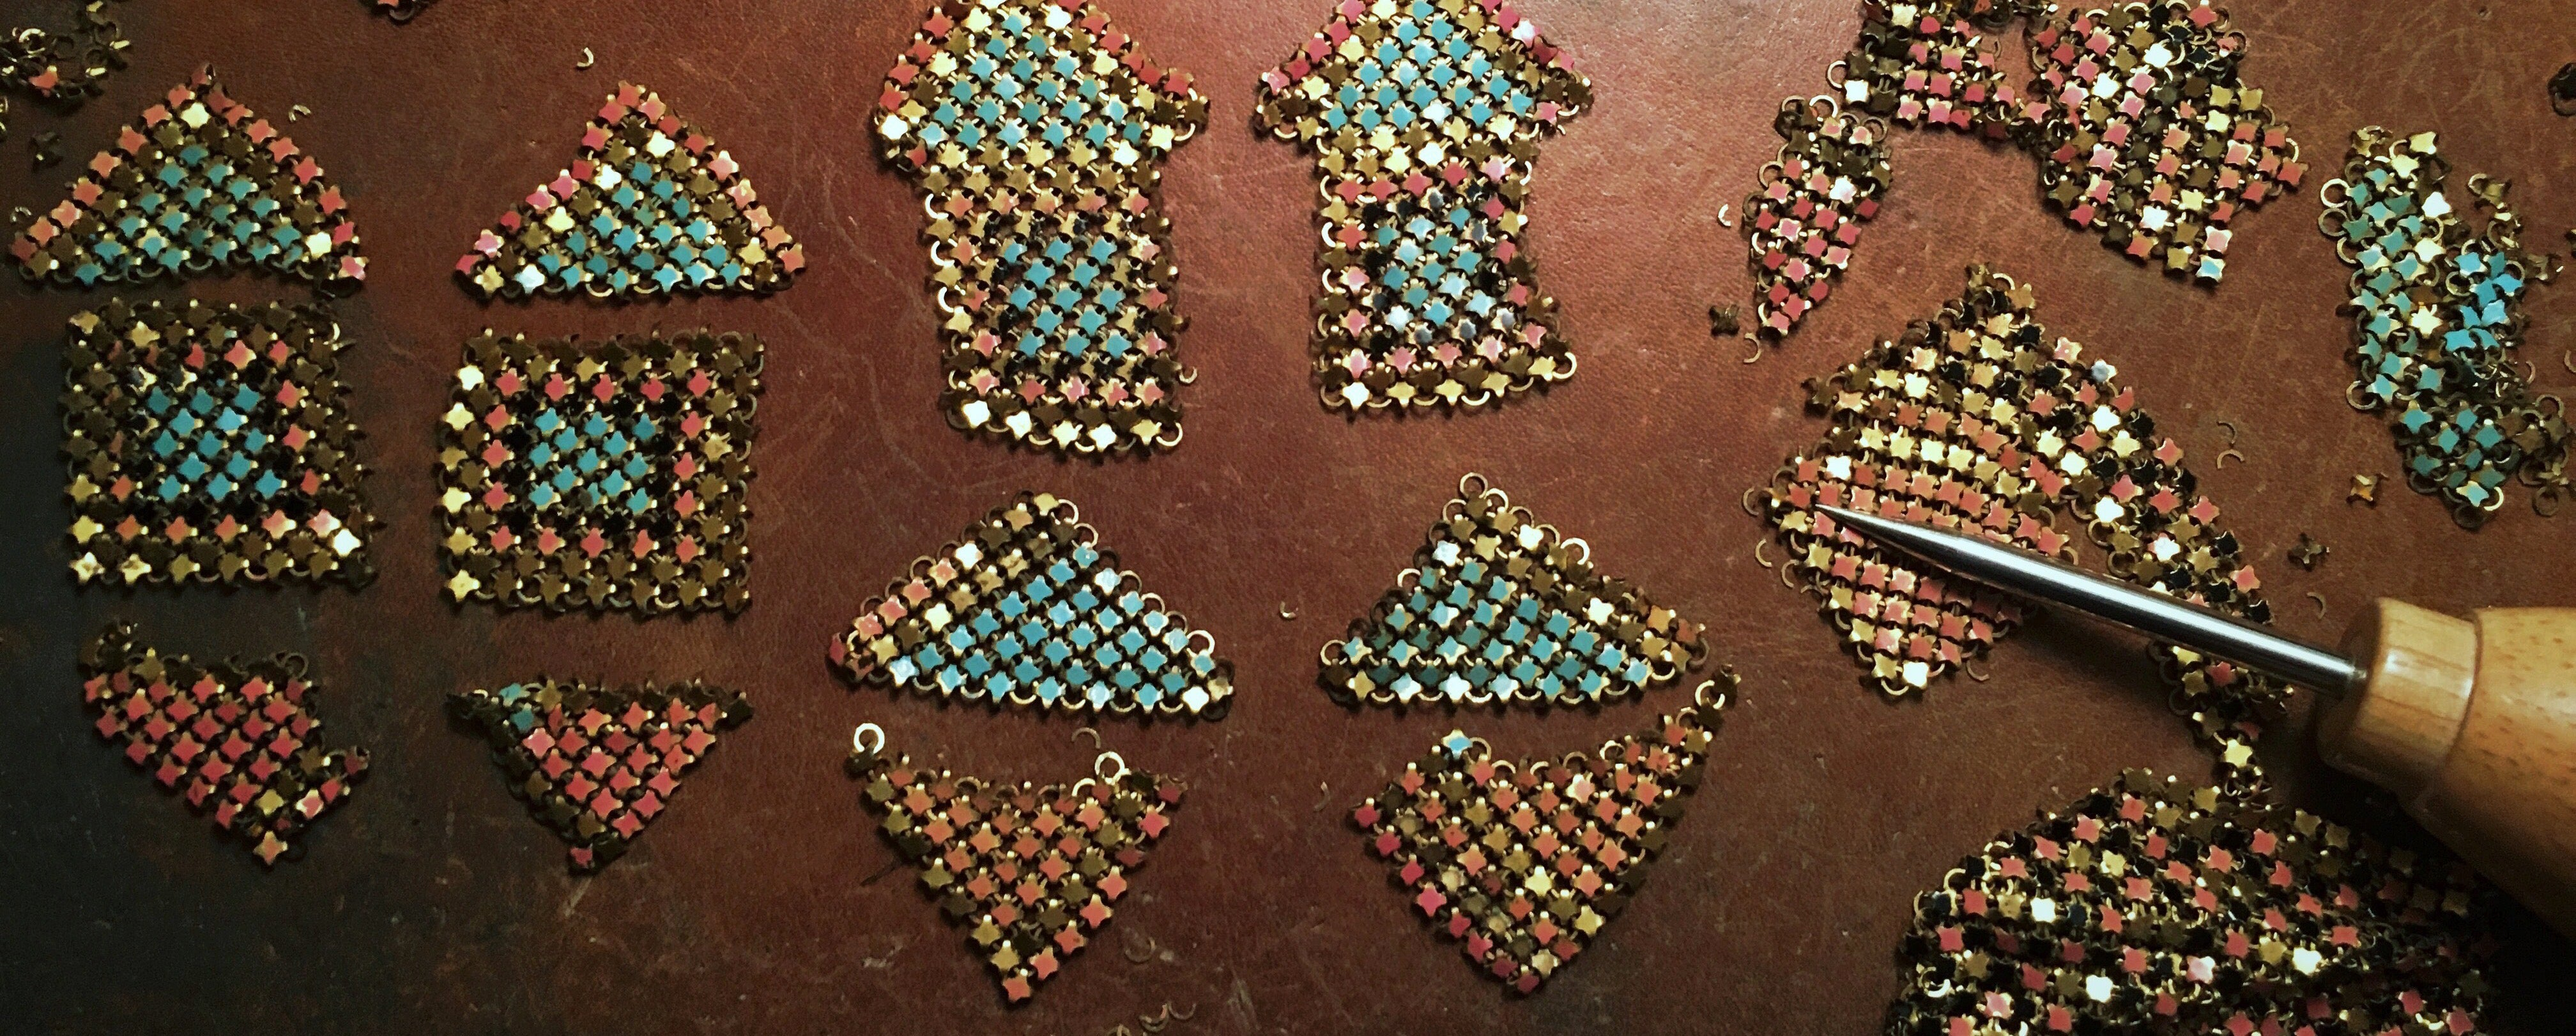 Process shot of antique metal mesh being pieced into earring forms.